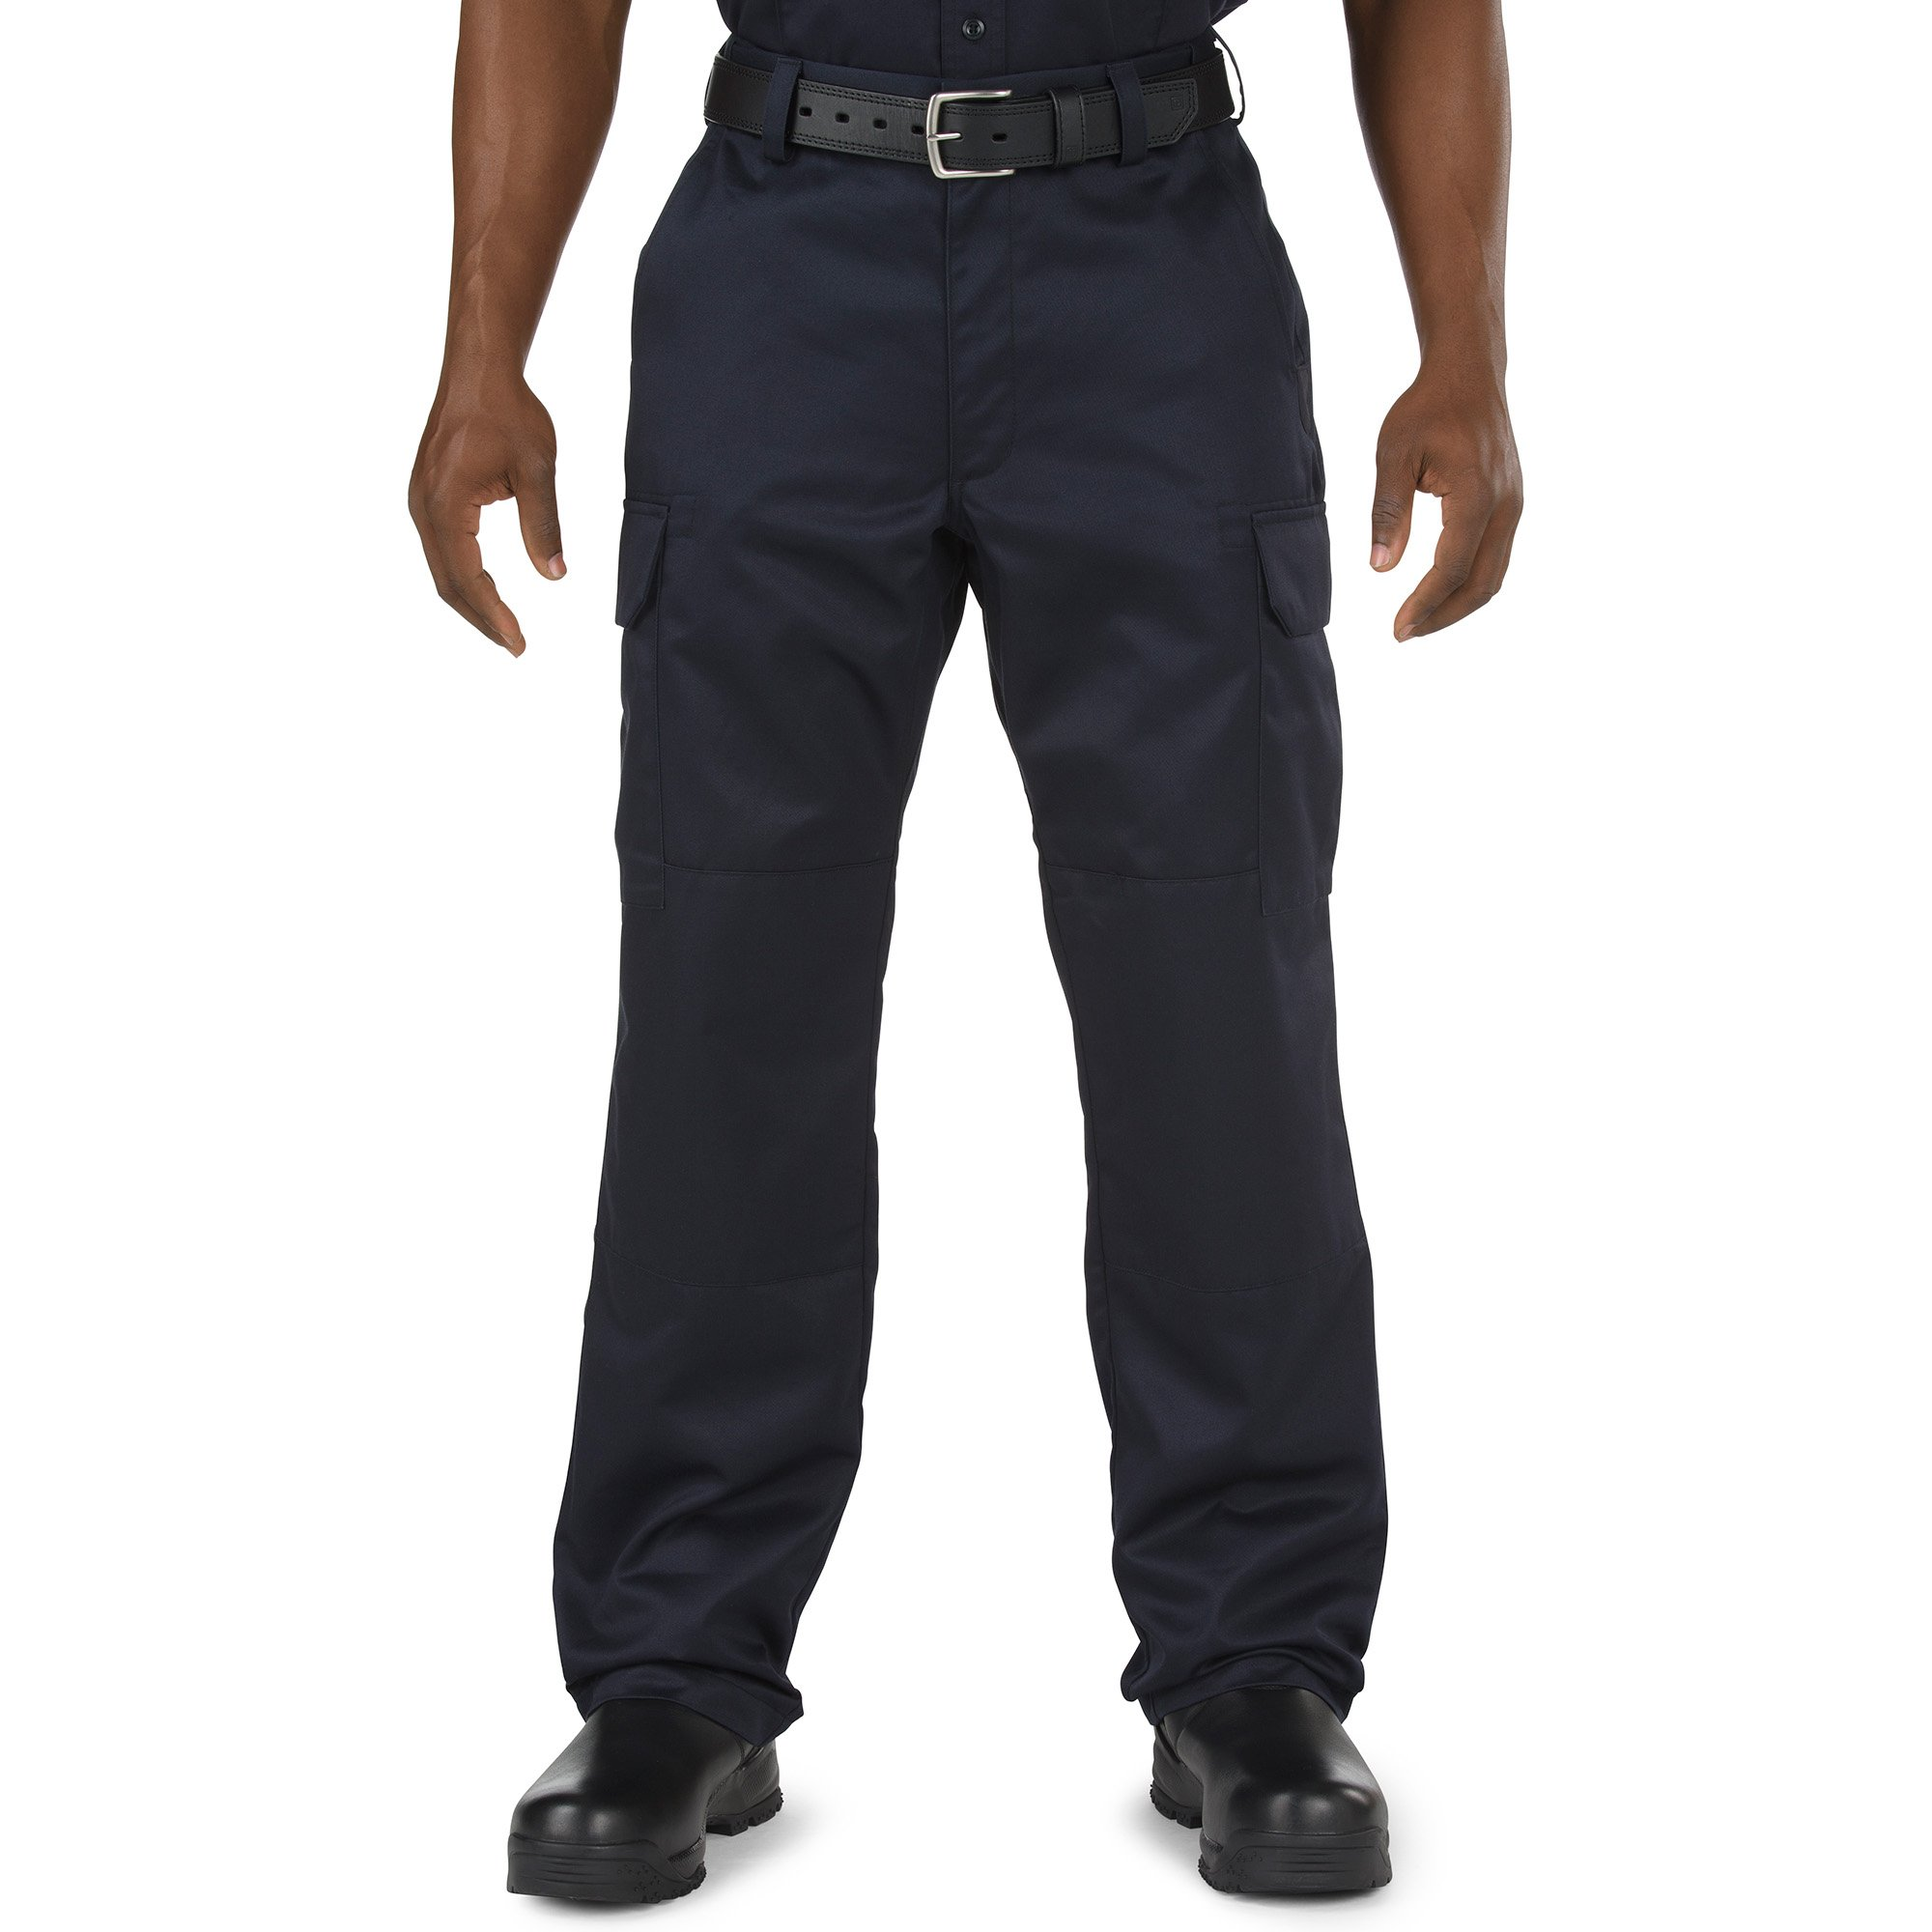 5.11 Men's Big & Tall Company Cargo Work Uniform Operator Unhemmed Tactical Pants with 100% Cotton Twill, Style 74399L